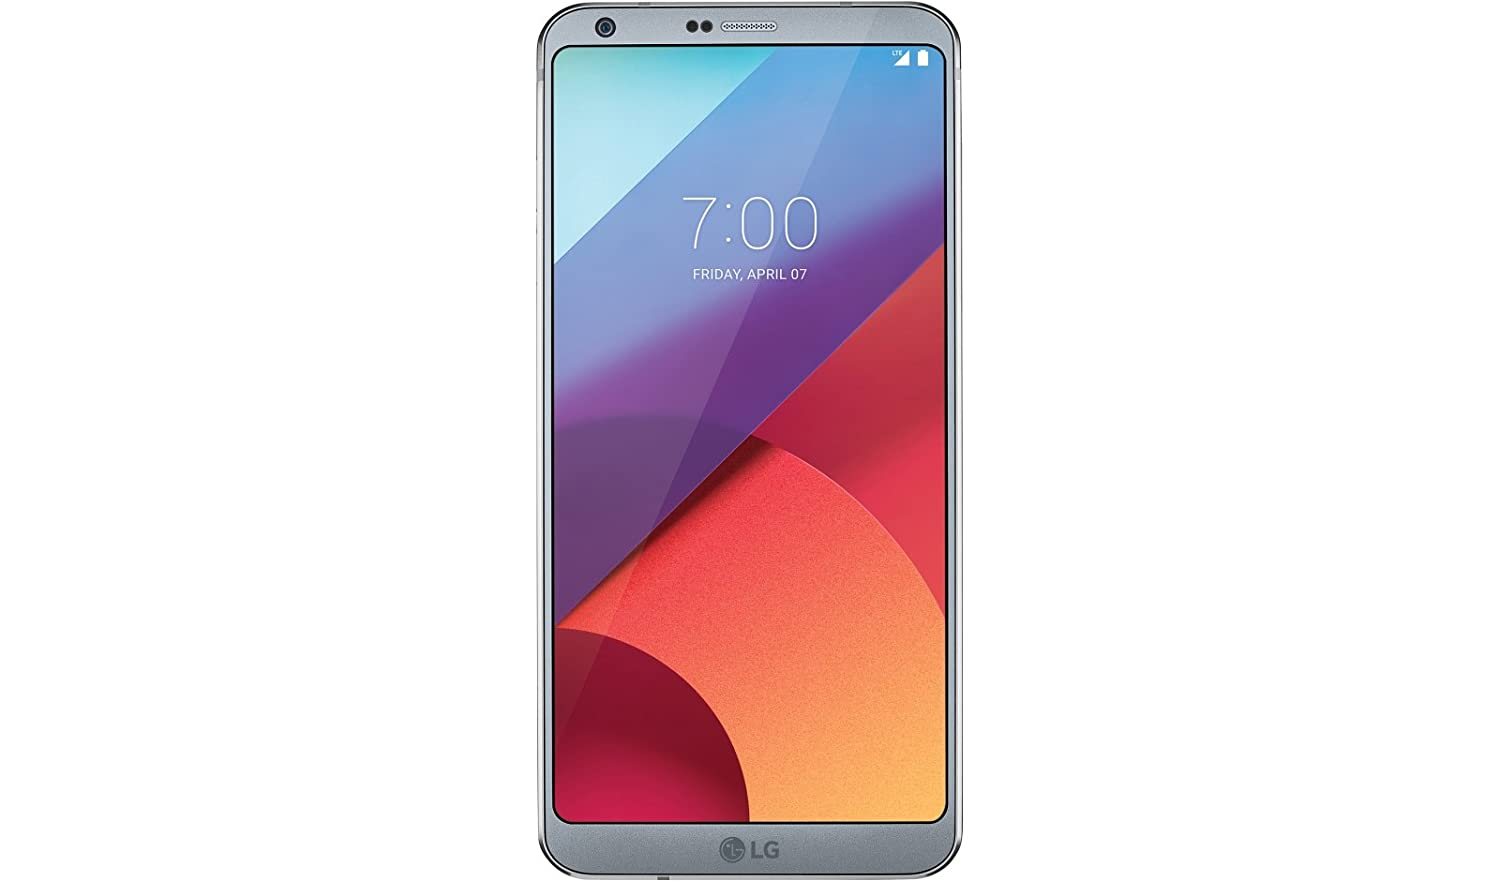 LG G6 H872 32GB T-Mobile Unlocked Android Phone w/Dual 13MP Camera - Ice Platinum